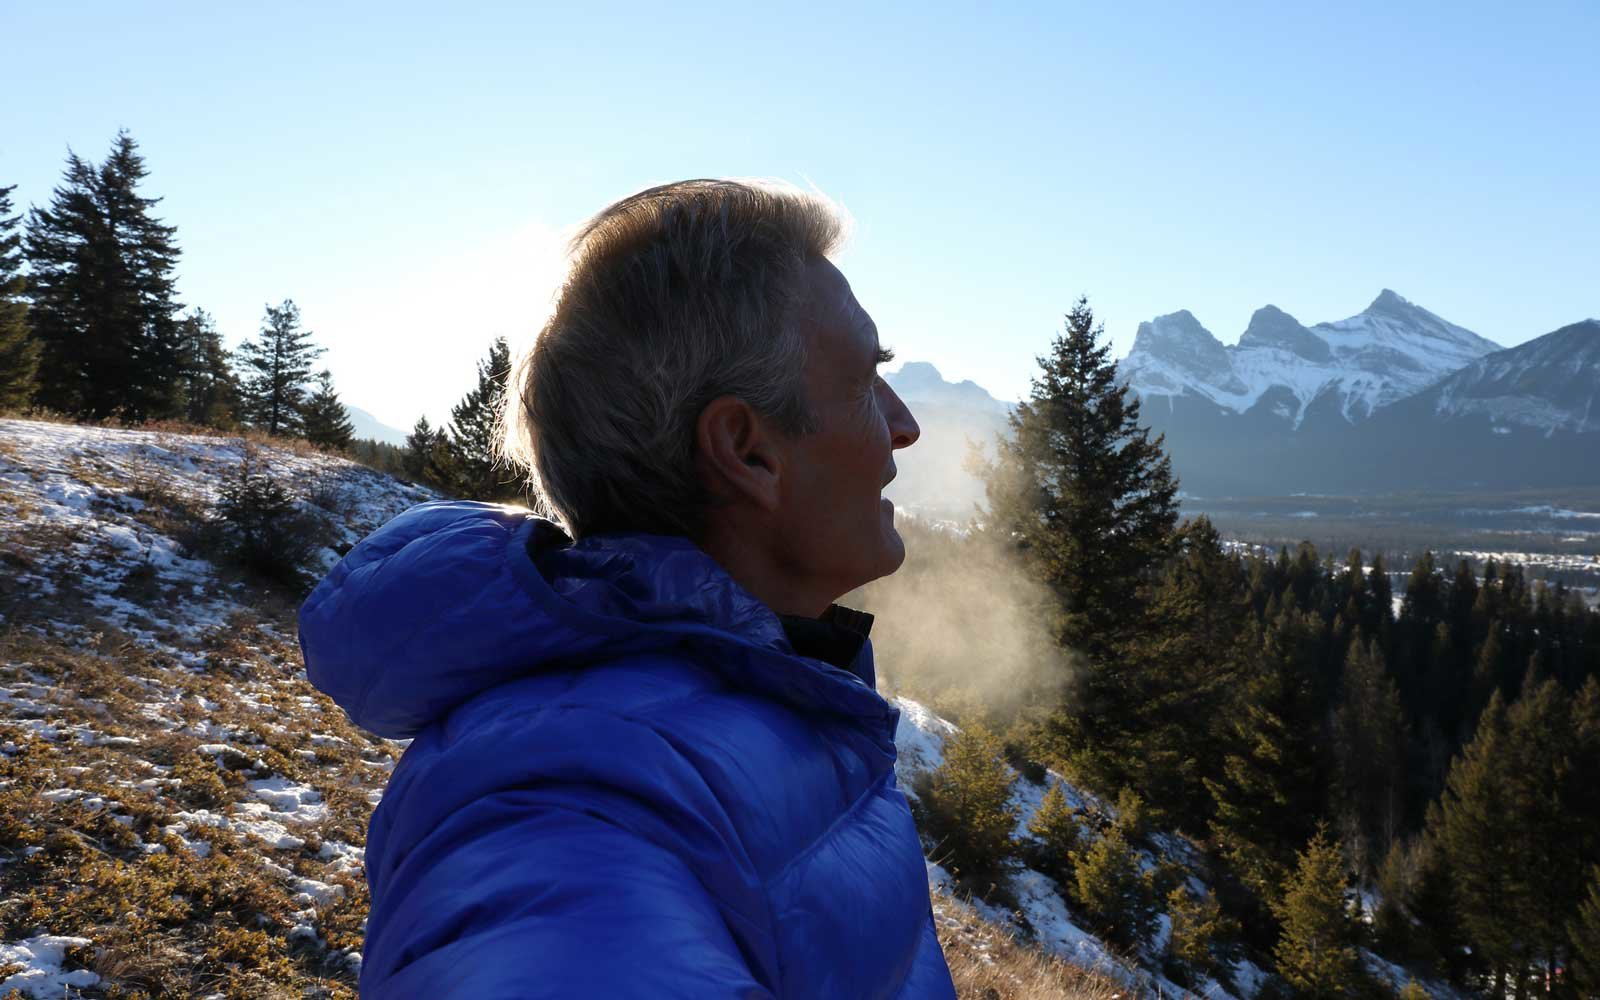 Man looks off to distant mountains from hillside on a cold winter day